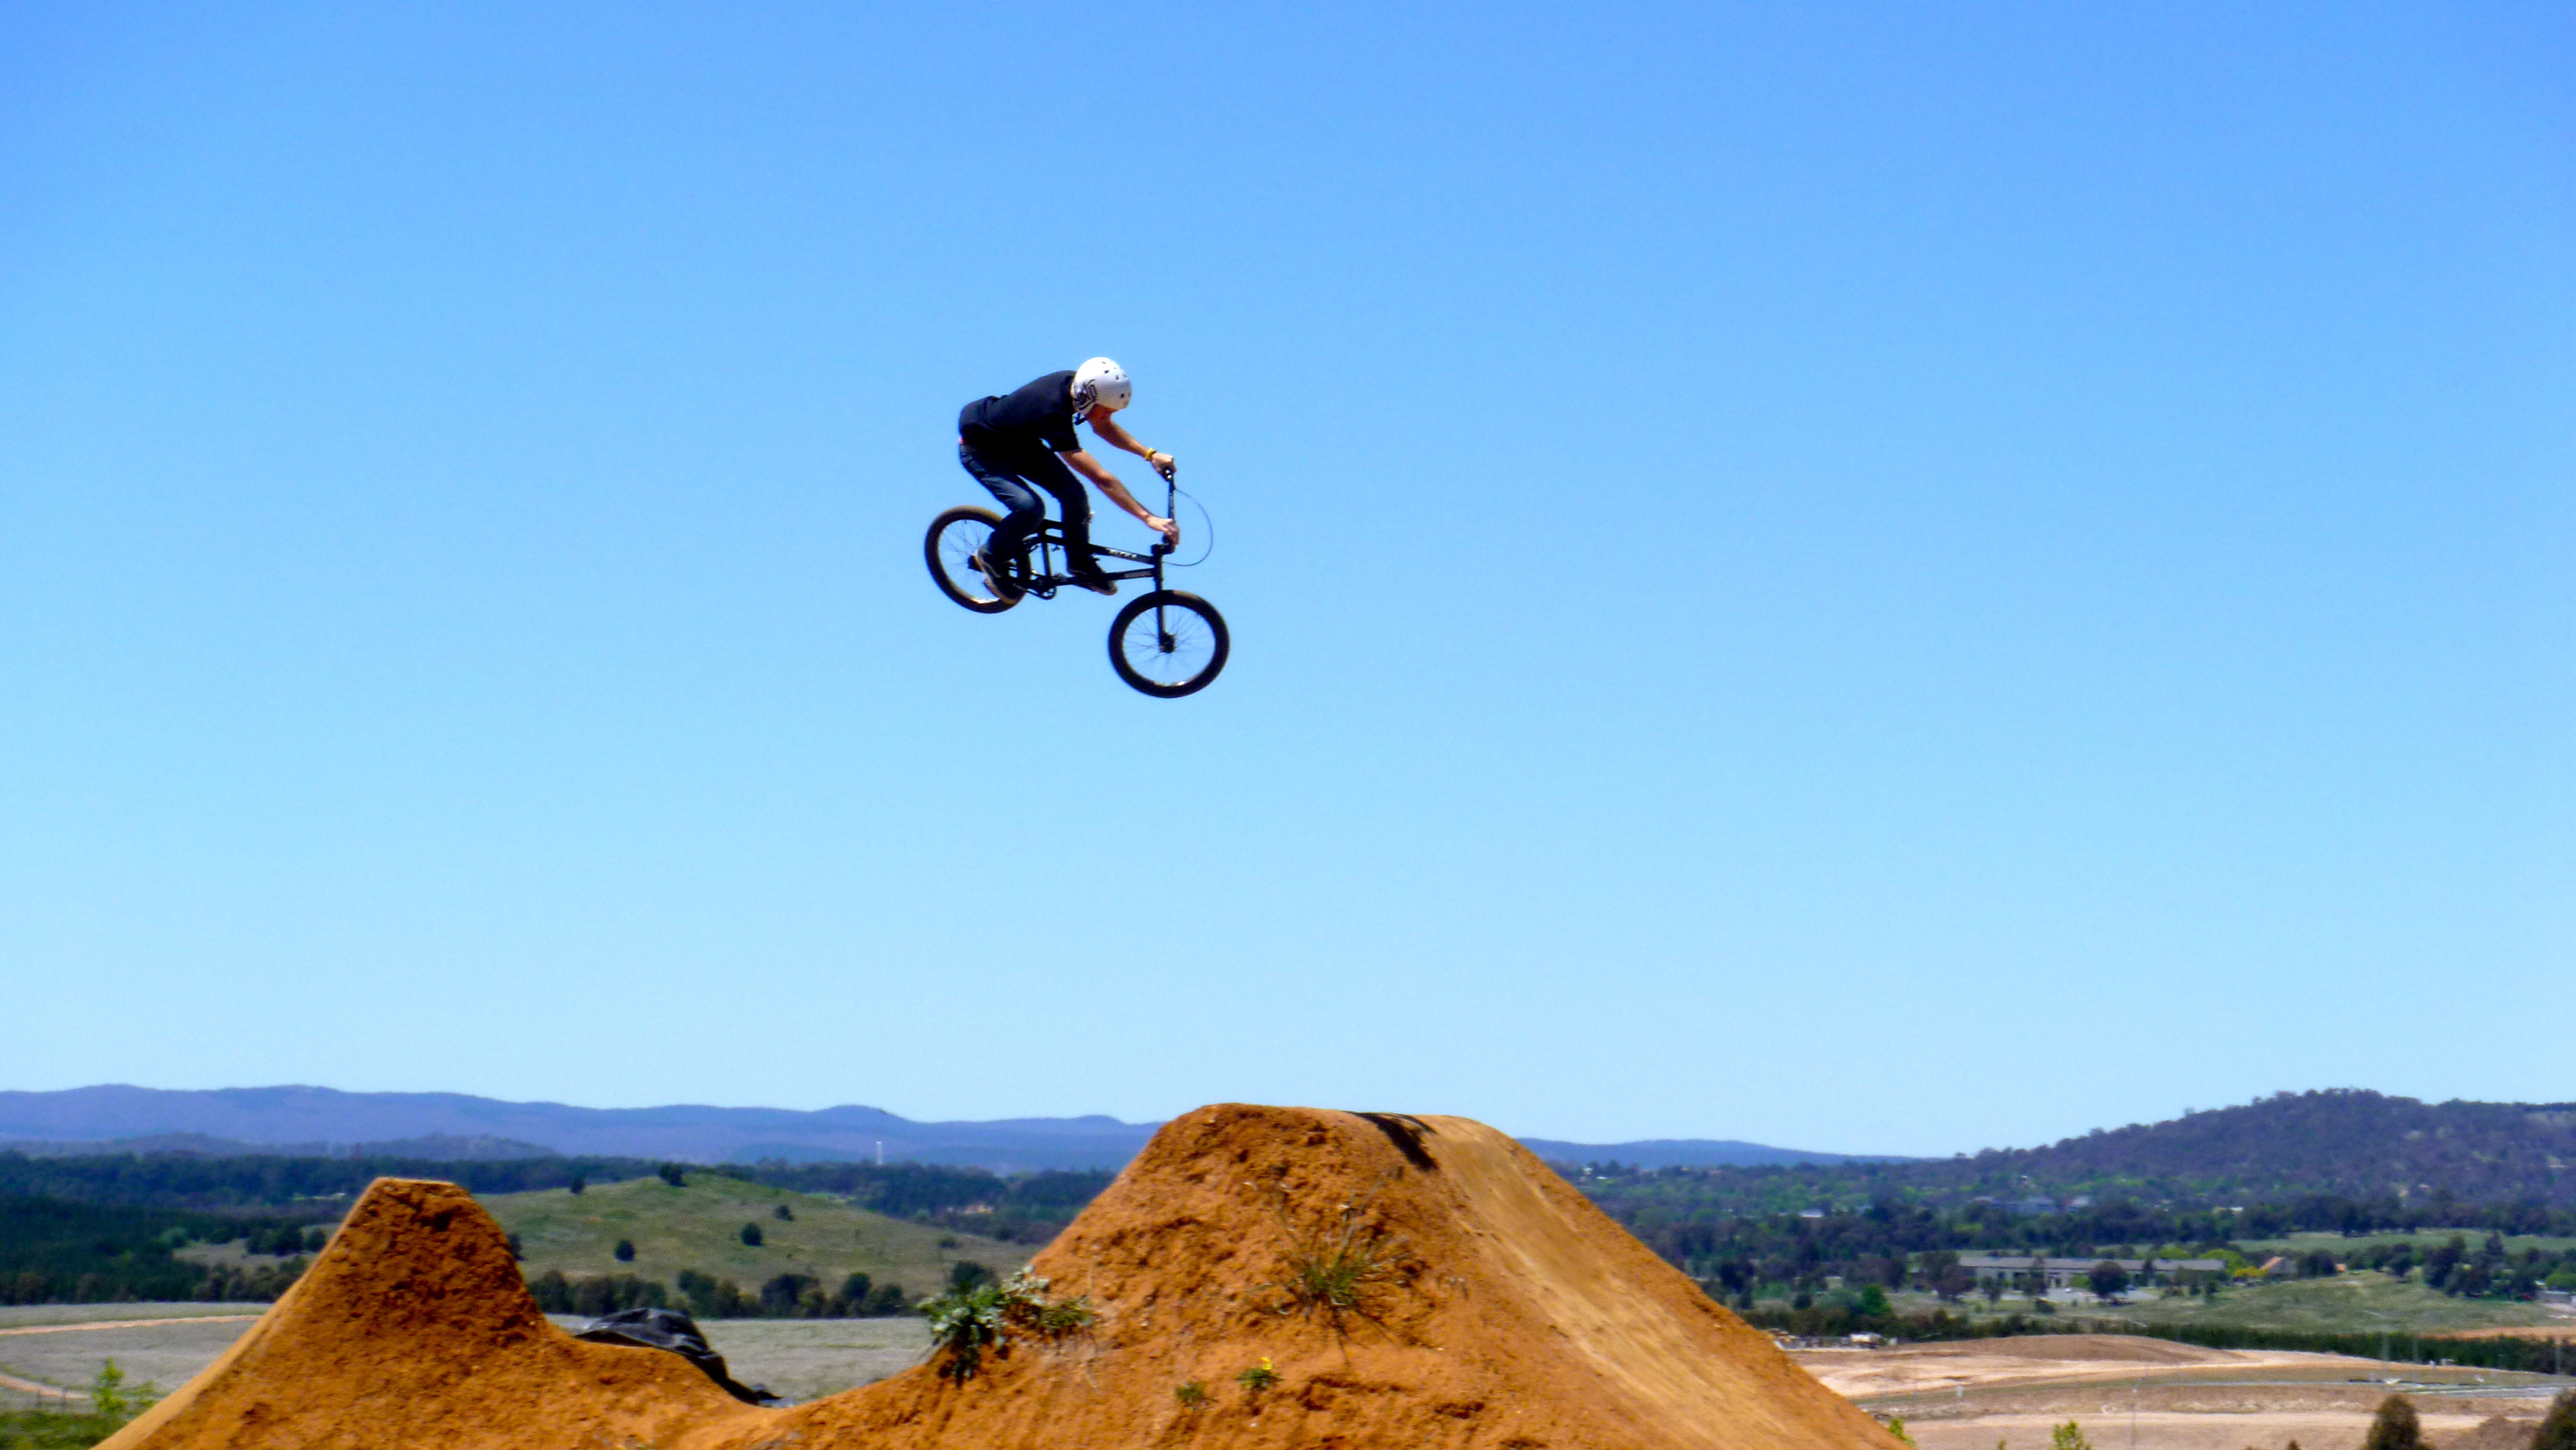 mountain bike jumps sydney - photo#34